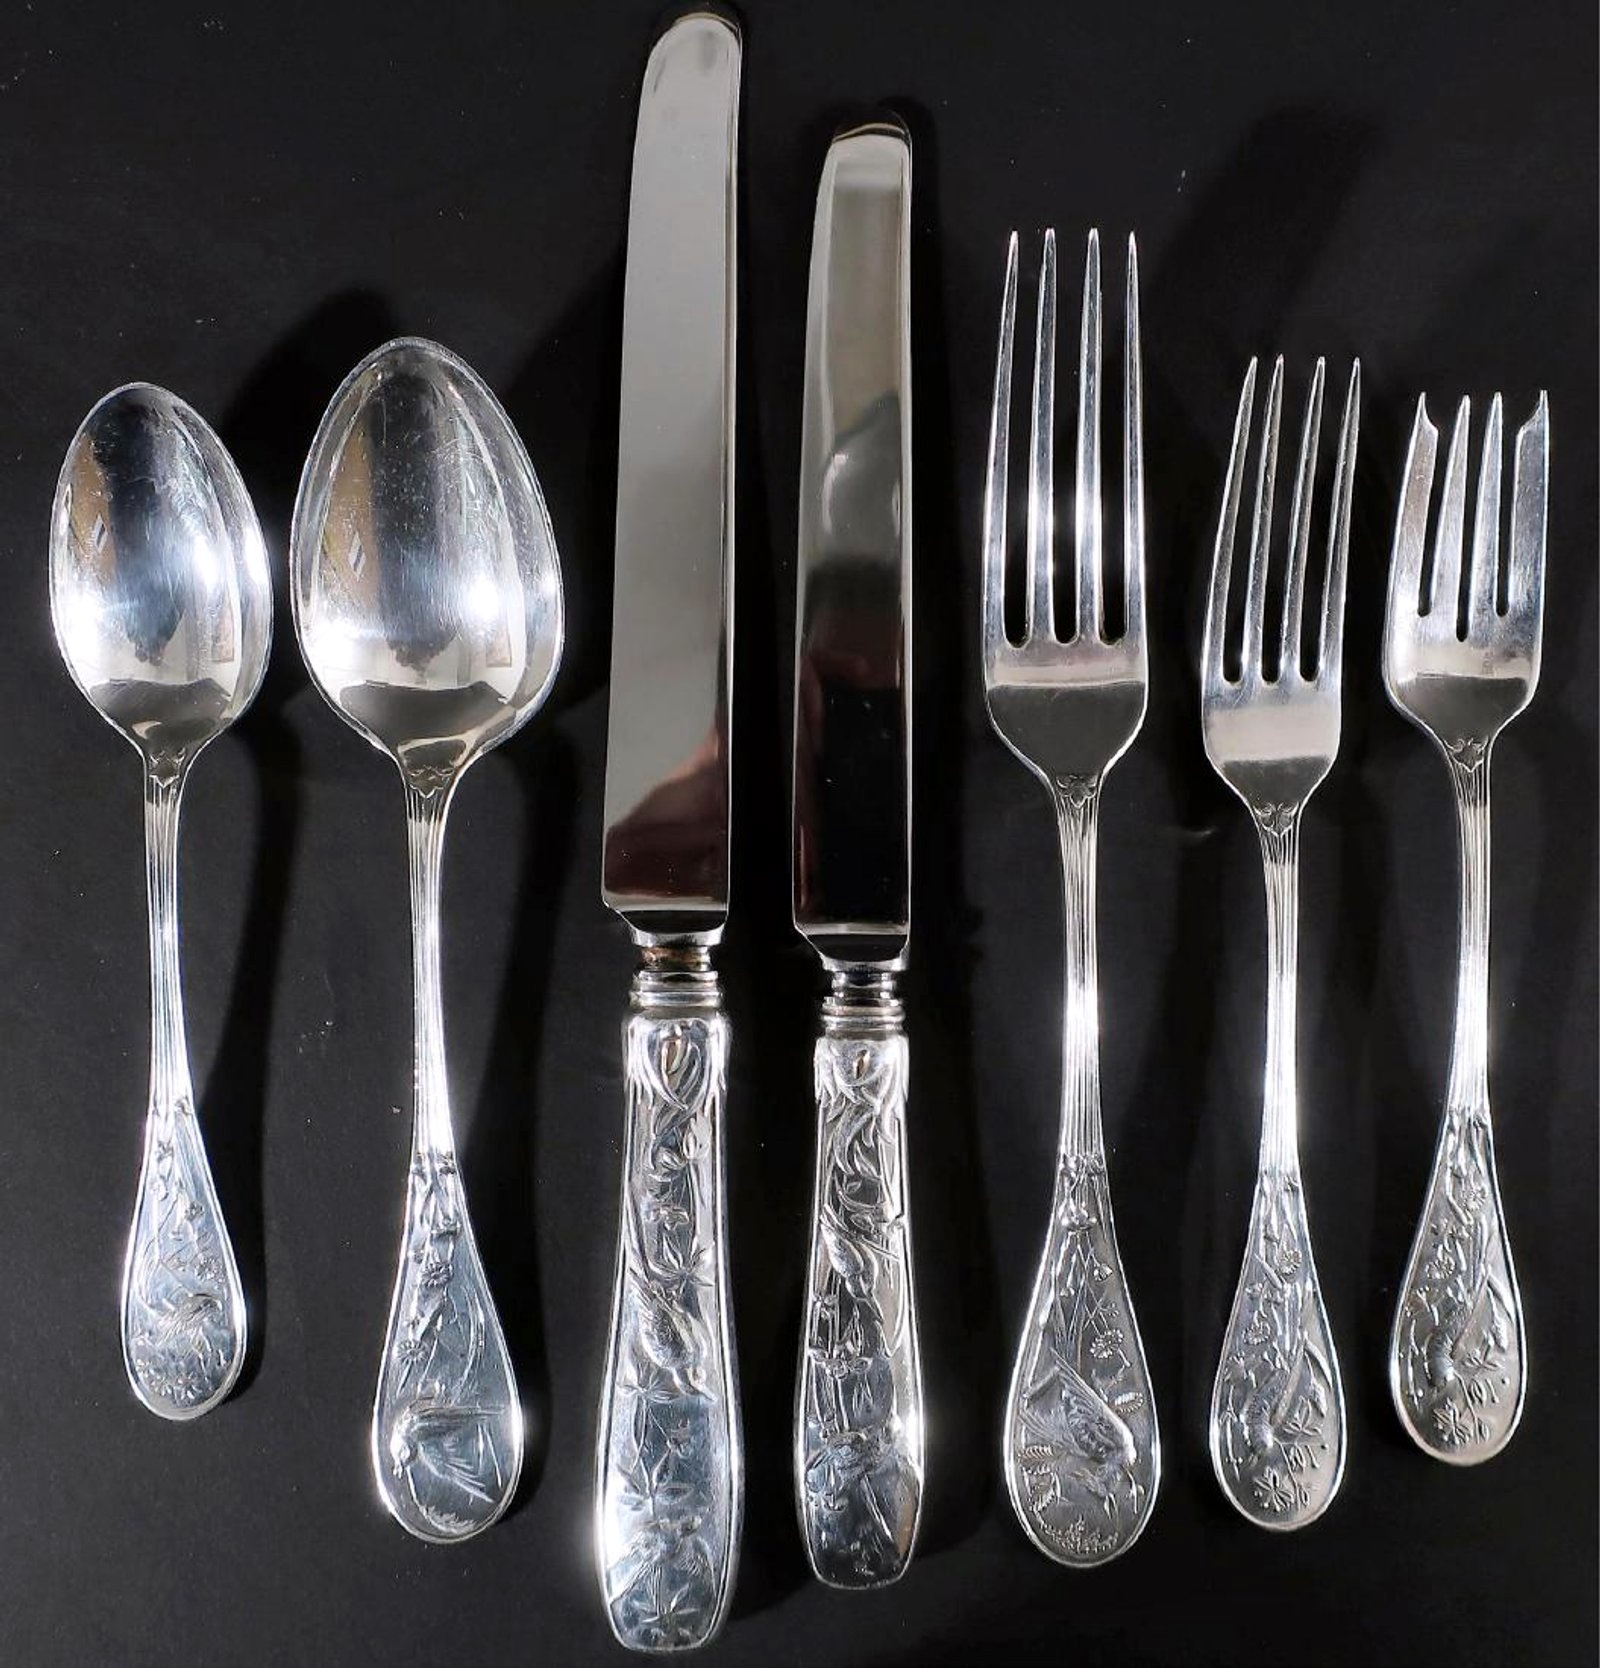 Tiffany 'Audubon Birds' Pattern Sterling Silver Flatware Service. Sold For $15,625